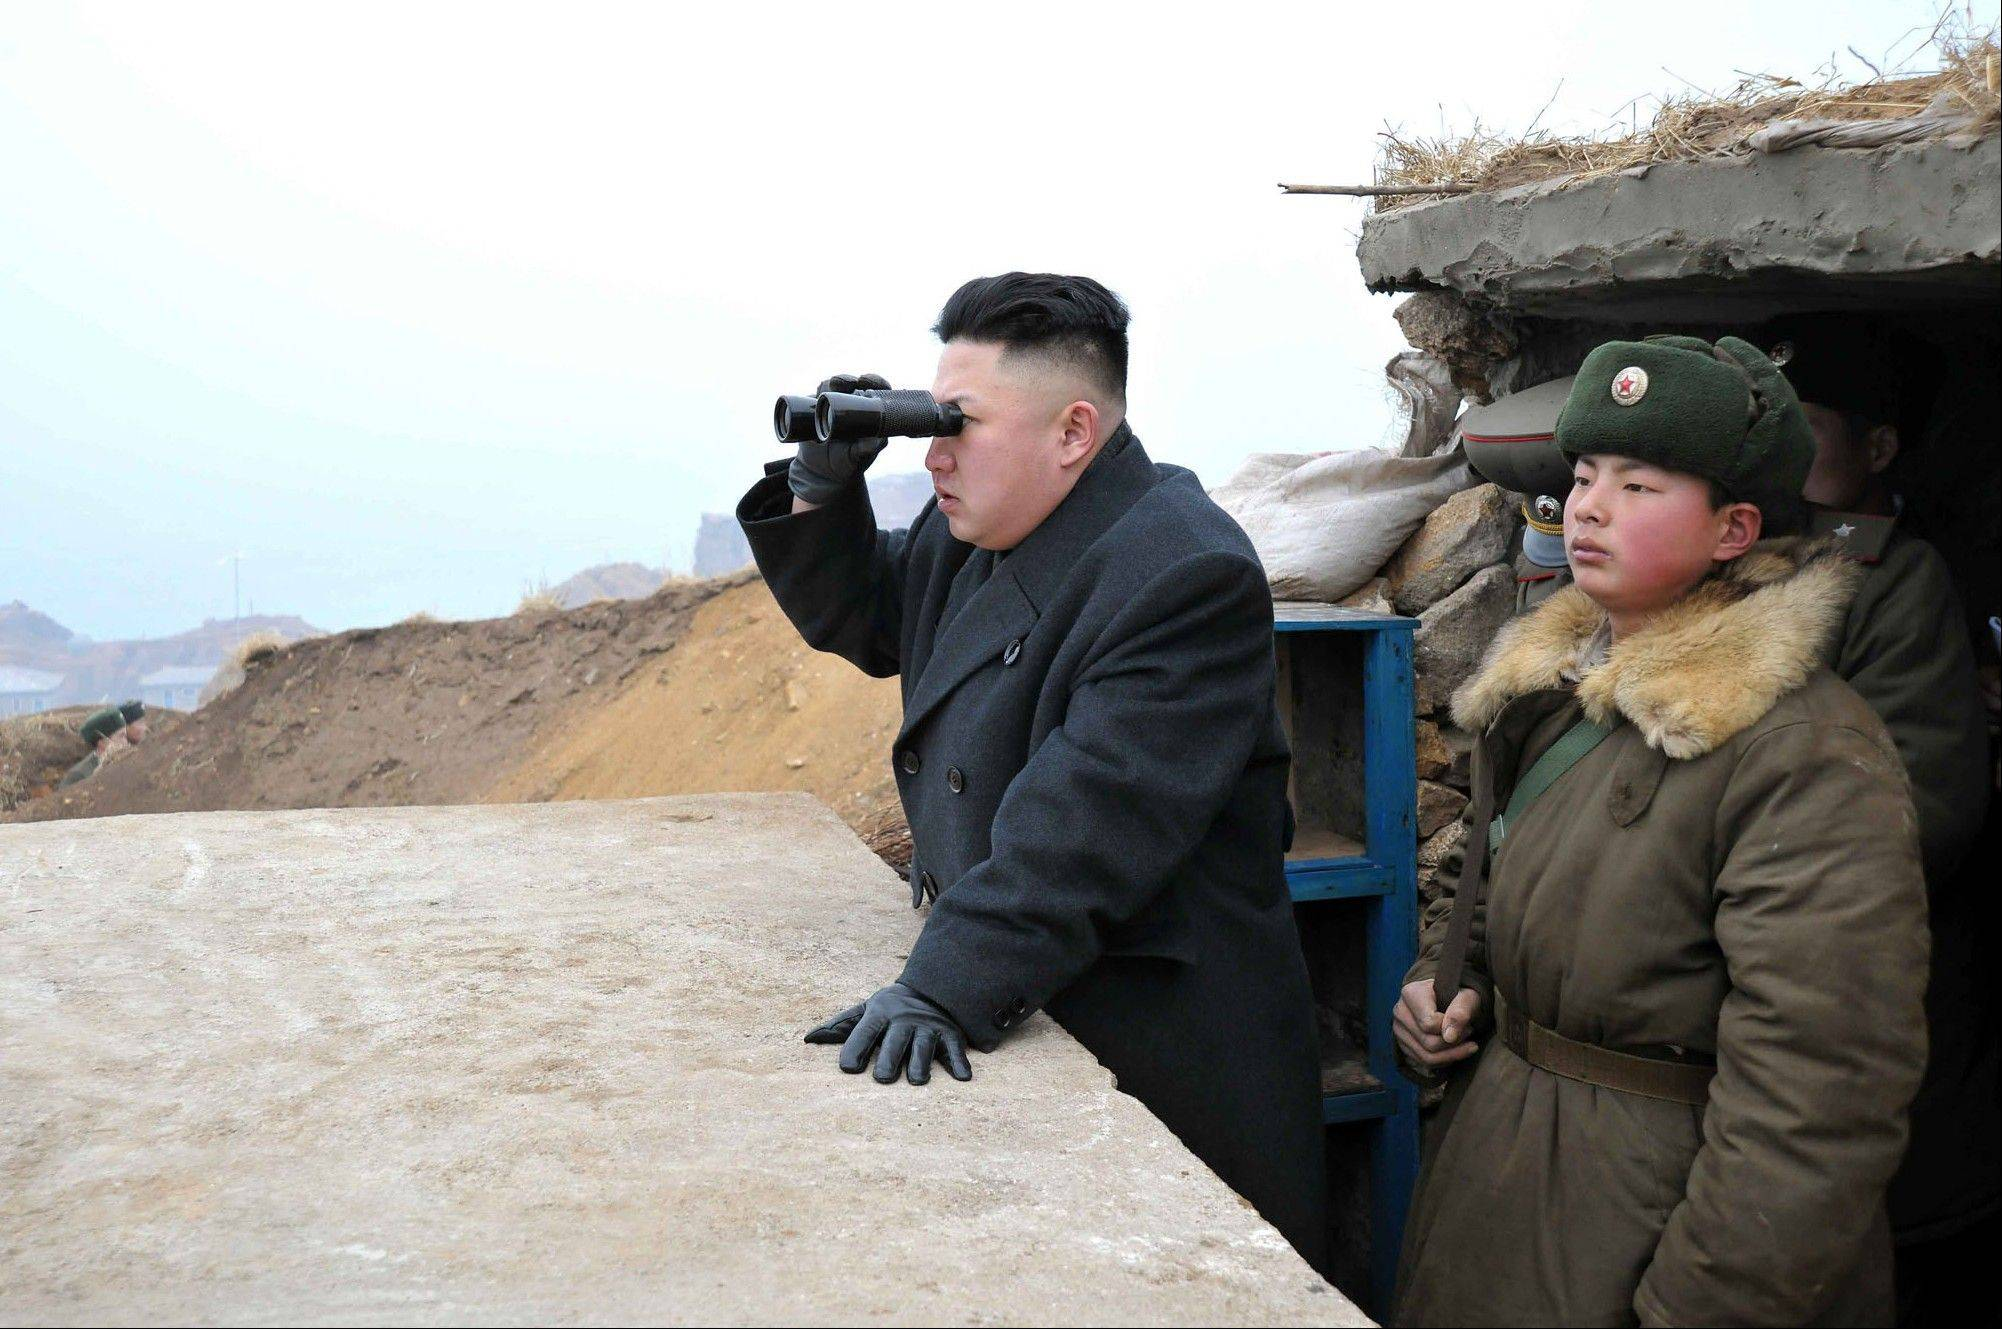 Associated Press/March 7, 2013North Korean leader Kim Jong Un, center, uses binoculars to look at the South's territory from an observation post at the military unit on Jangjae islet, located in the southernmost part of North Korea's border with South Korea.